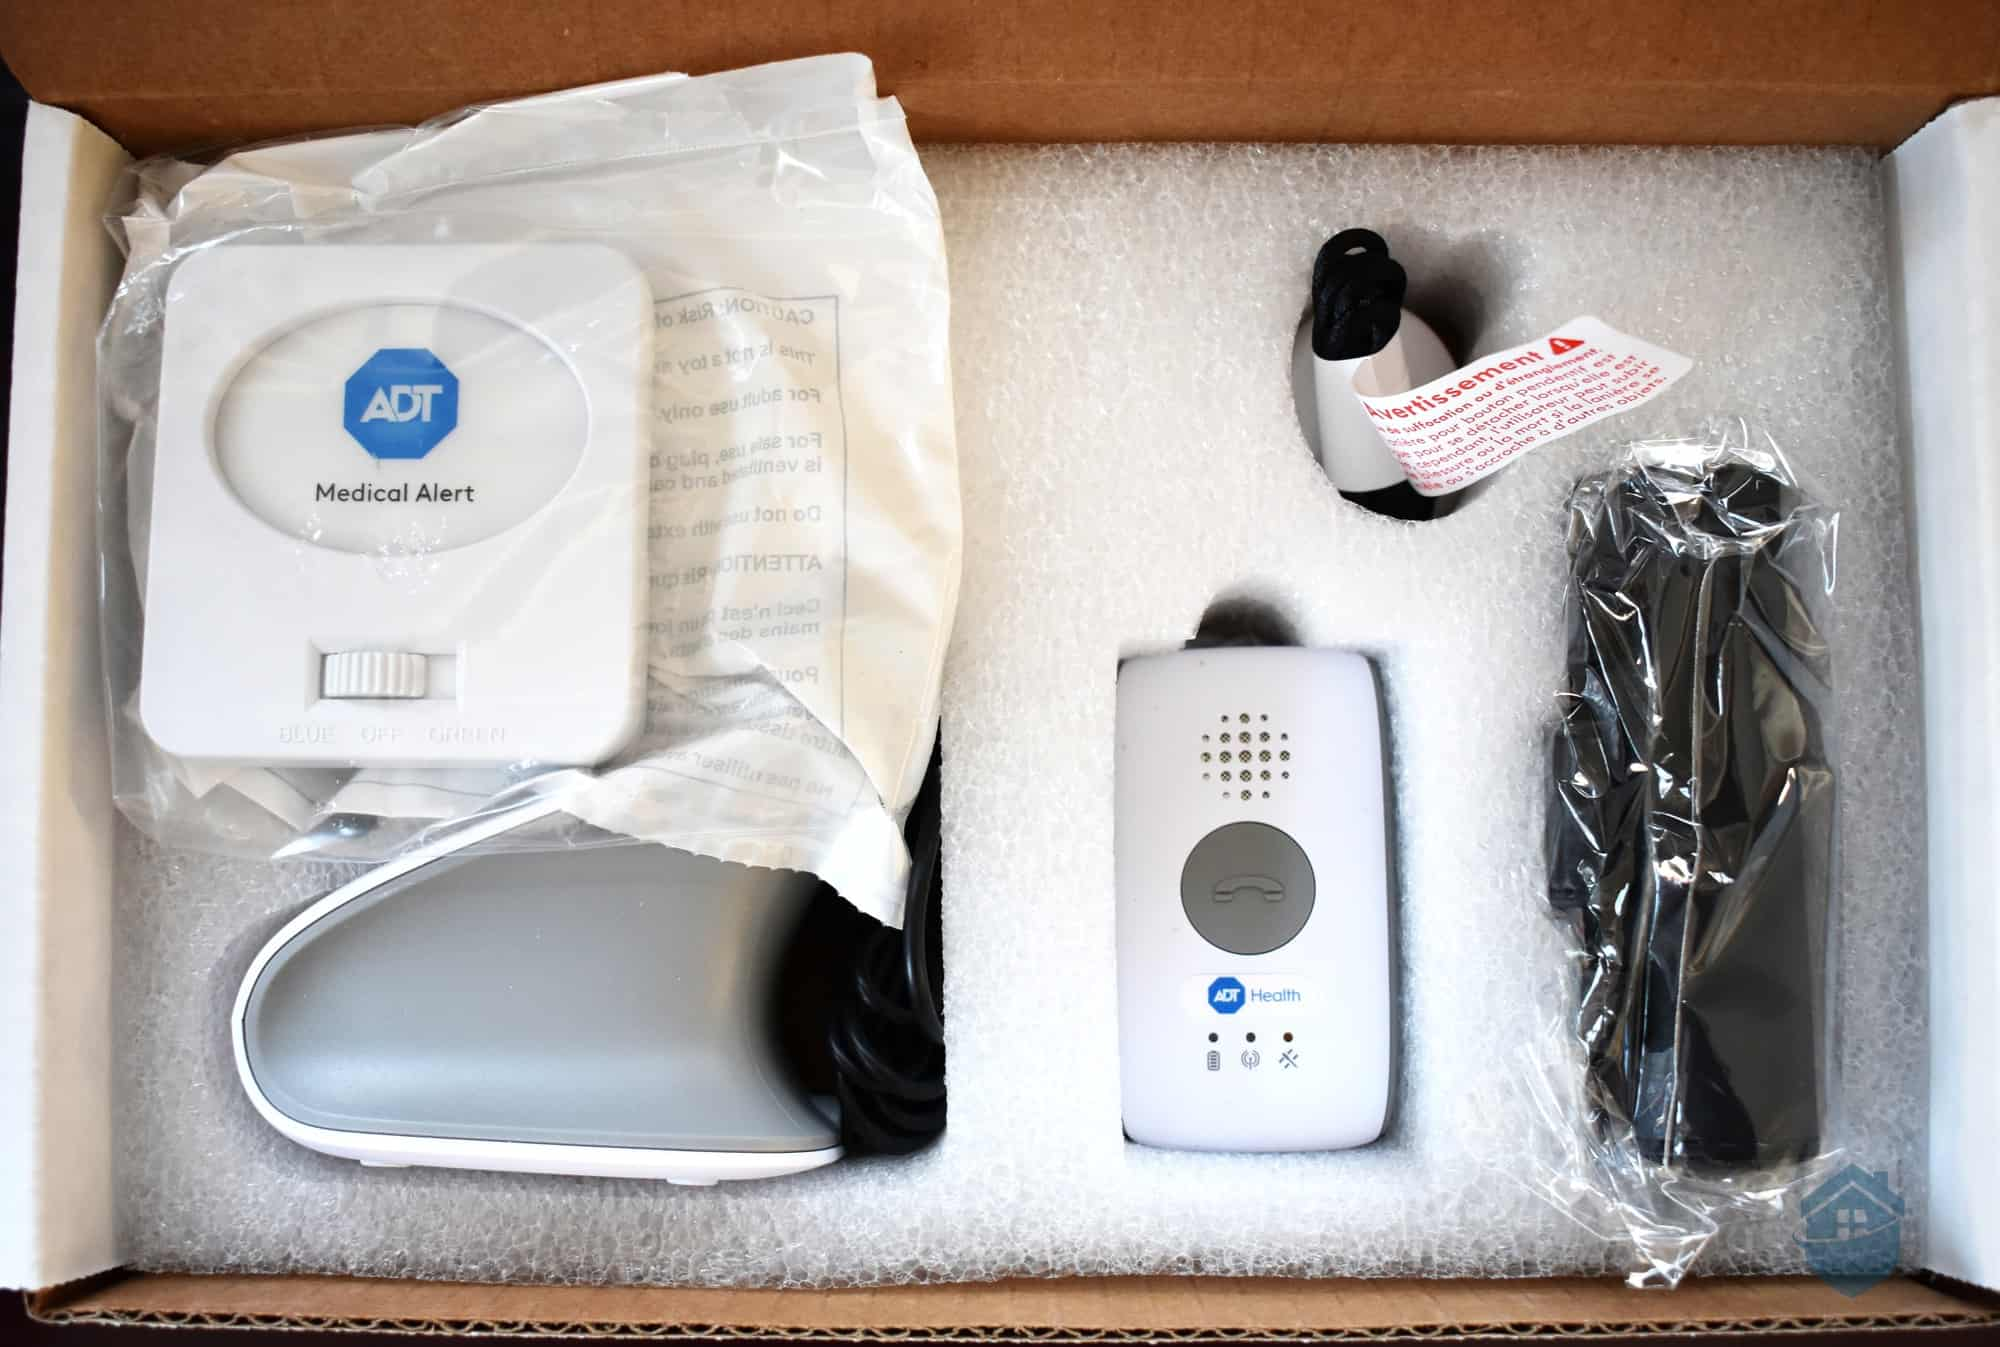 ADT Health's On-the-Go Device In The Box